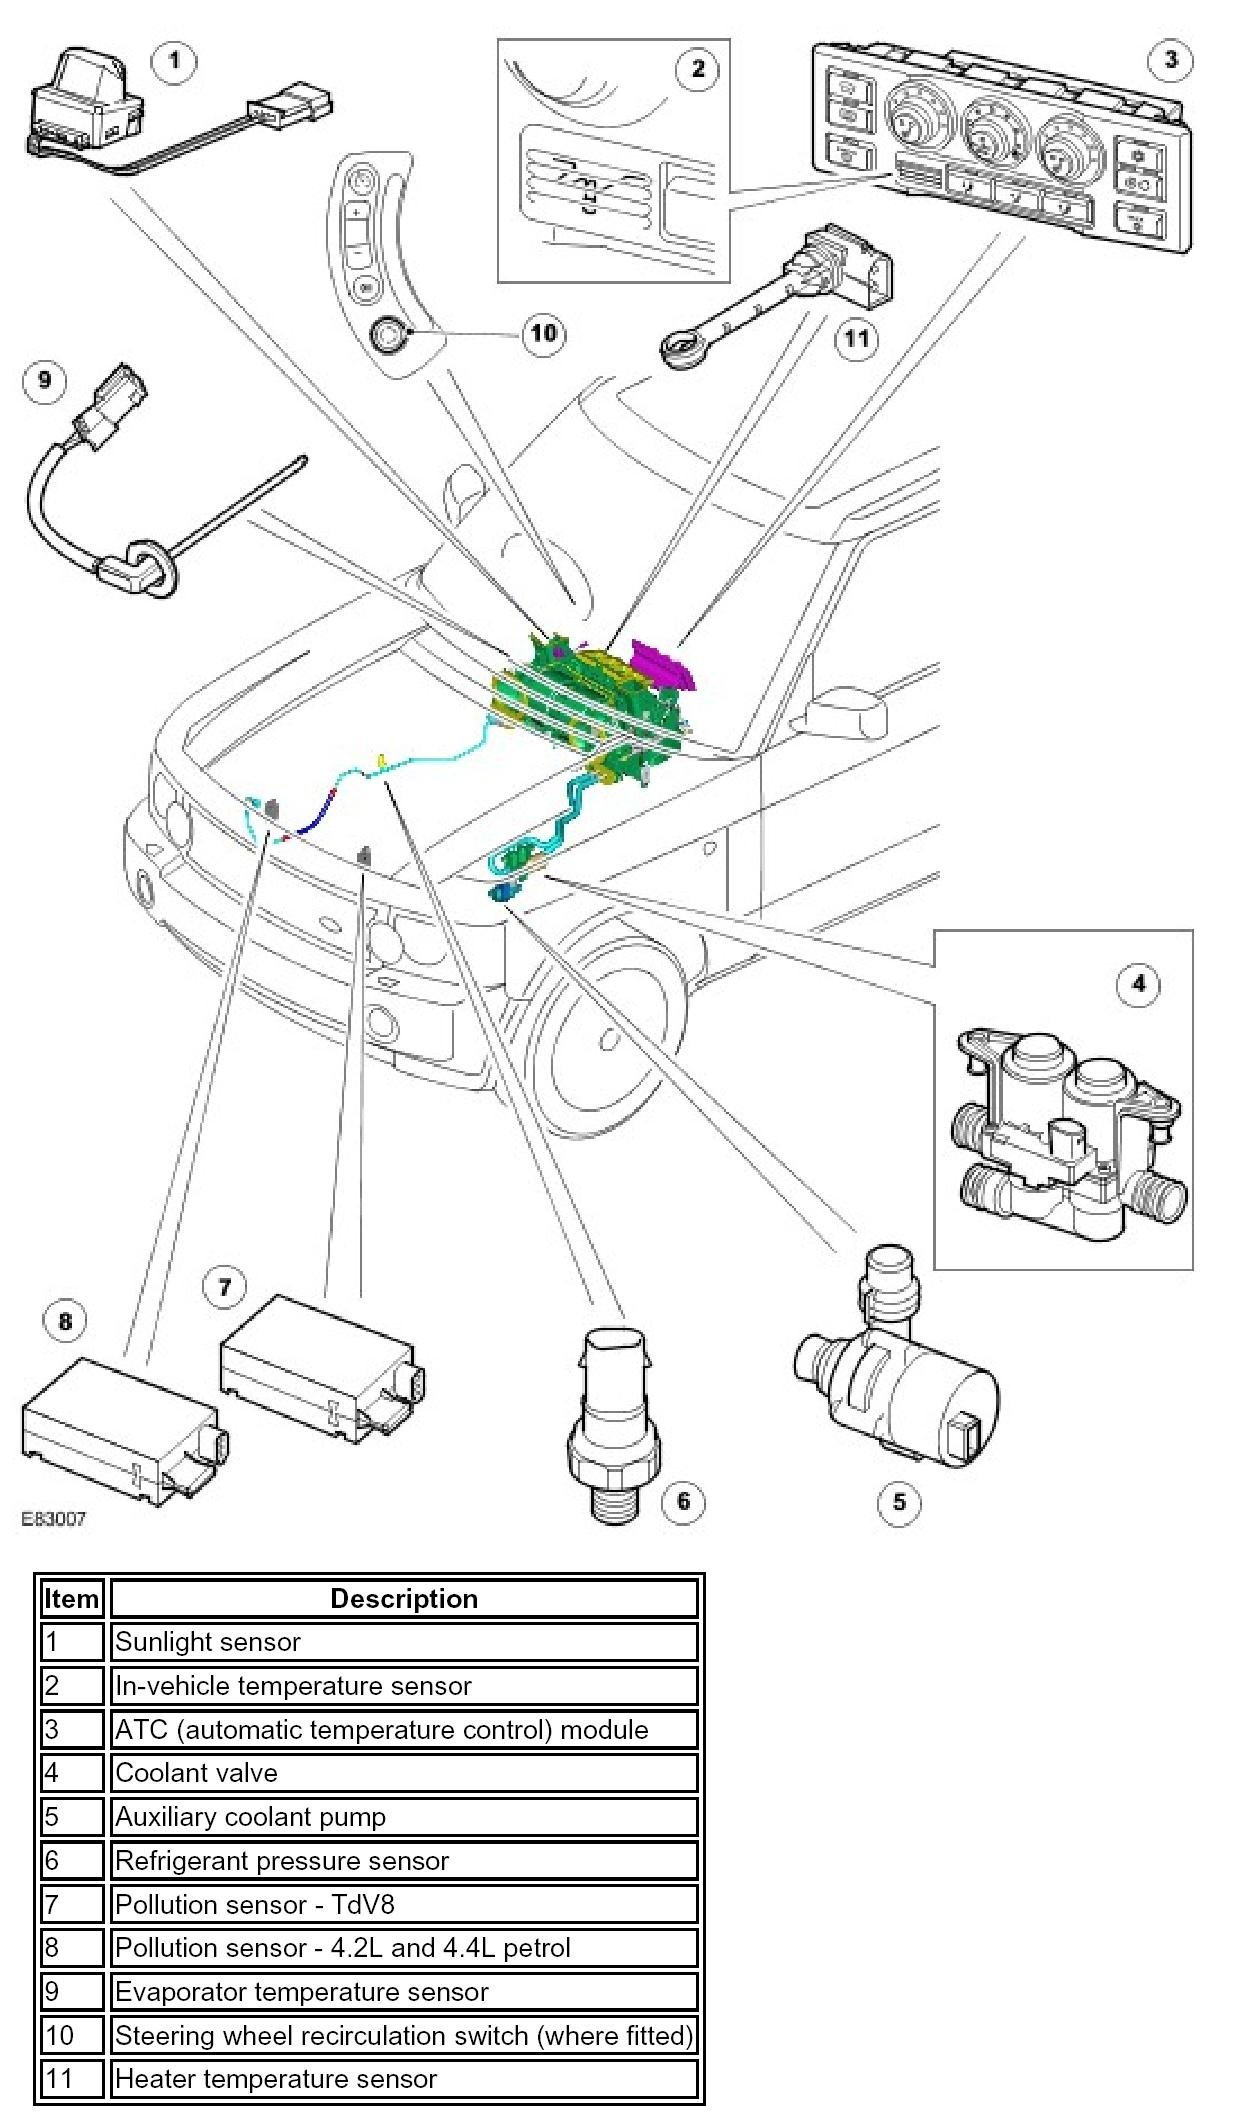 1361889 Vacuum Line R R On 1988 F150 302 5 0l in addition Discussion T17953 ds657356 besides Canister Purge Valve Solenoid Location also Chevrolet Aveo Mk1 2002 2011 Fuse Box Diagram together with Vvt Variable Valve Timing. on toyota camry evap diagram